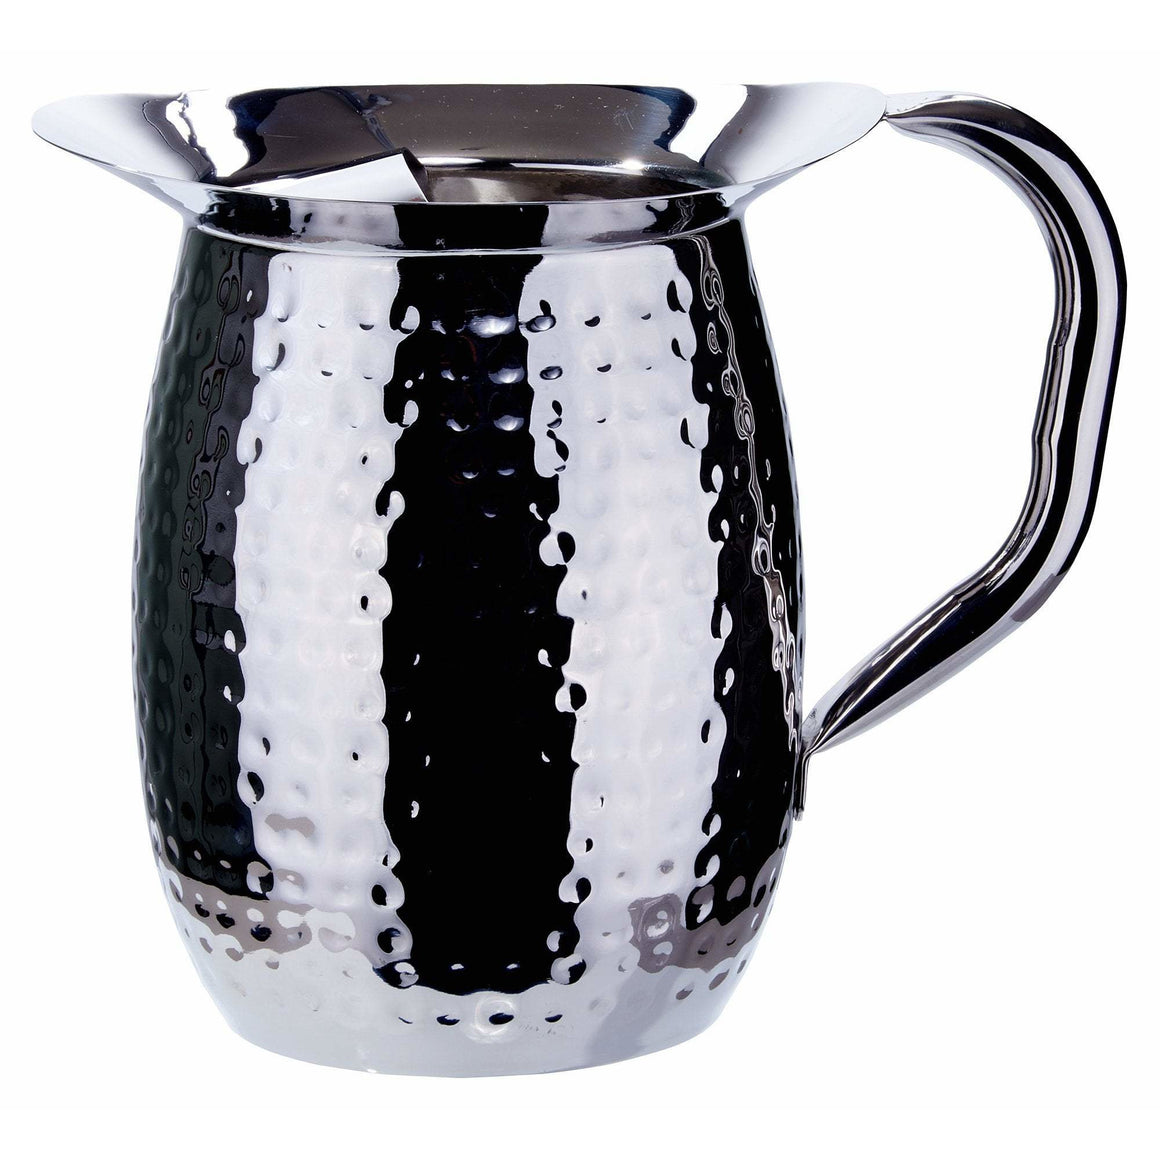 Winco - WPB-2CH - 2 Qt. Bell Pitcher w/ Ice Catcher, Hammered, Stainless Steel - Beverage Service - Maltese & Co New and Used  restaurant Equipment